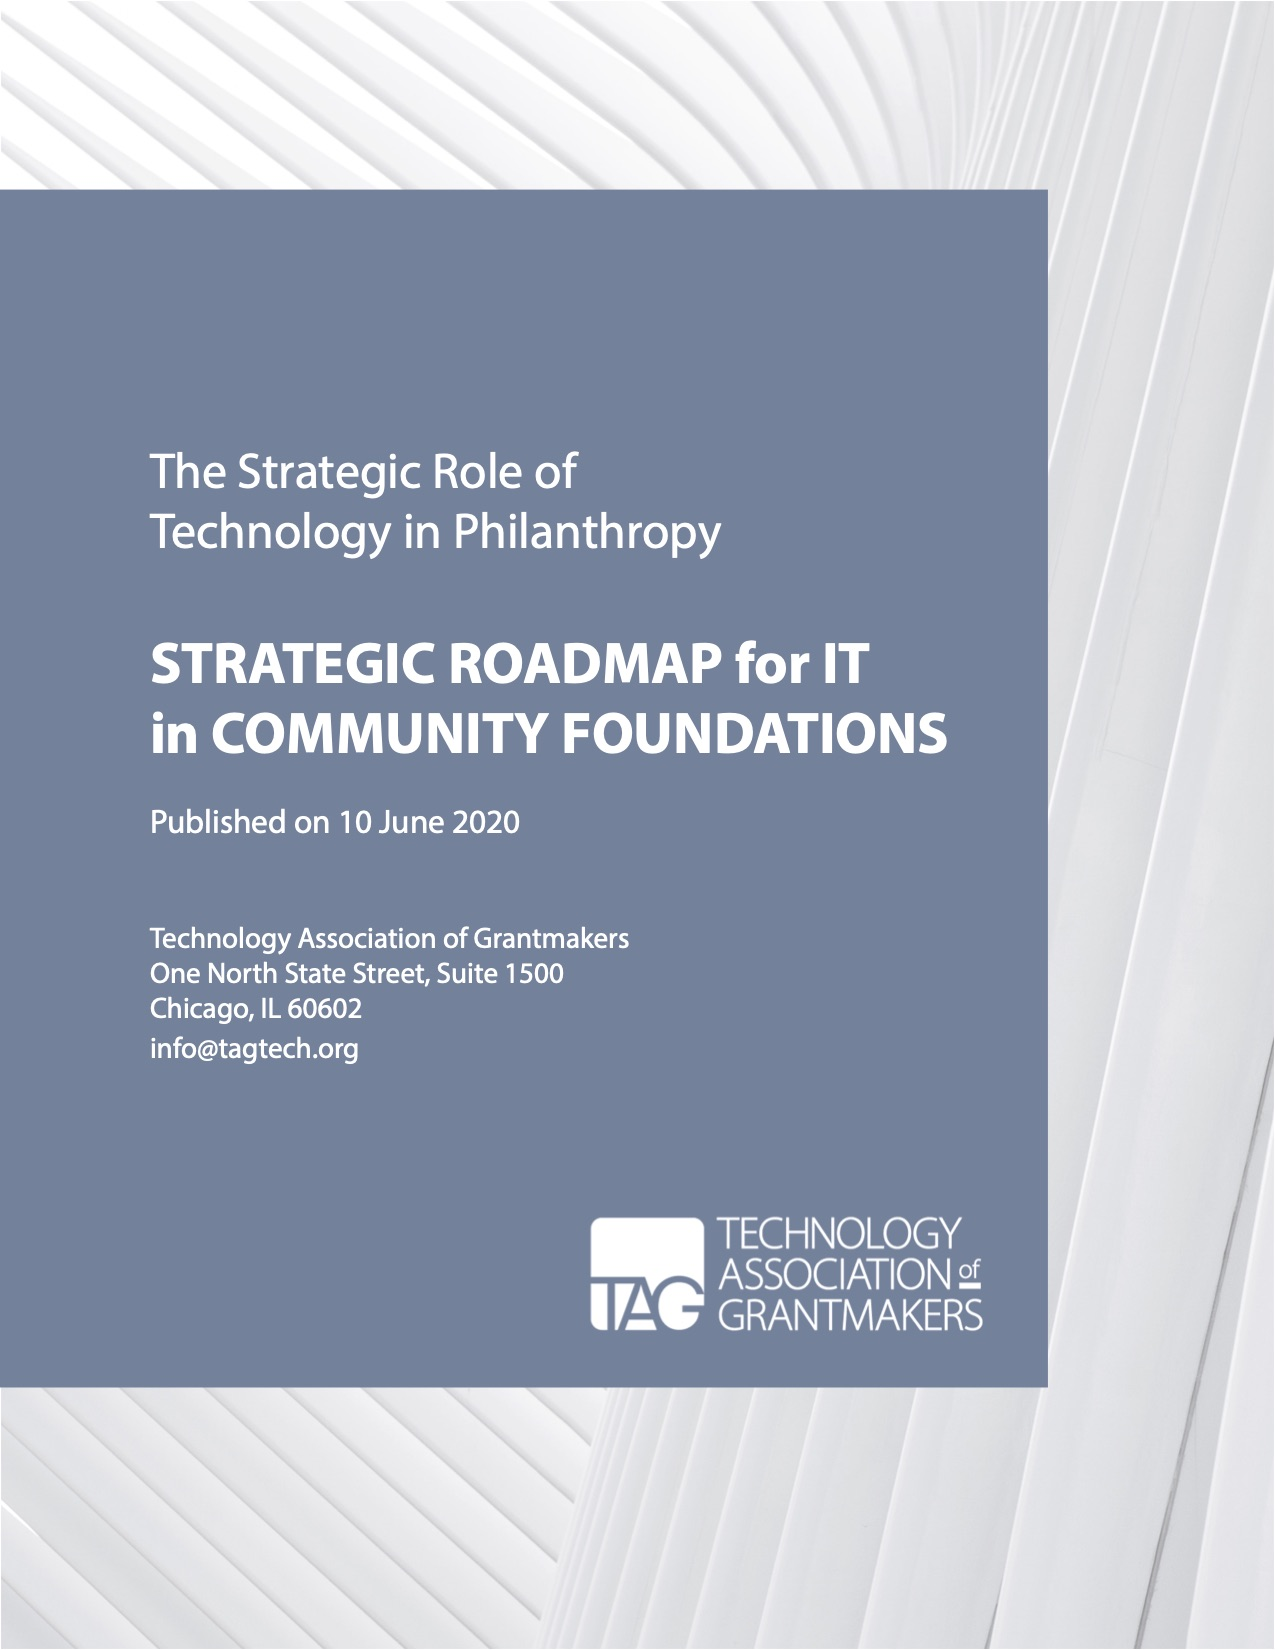 The cover image for Strategic Roadmap for IT in Community Foundations Whitepaper